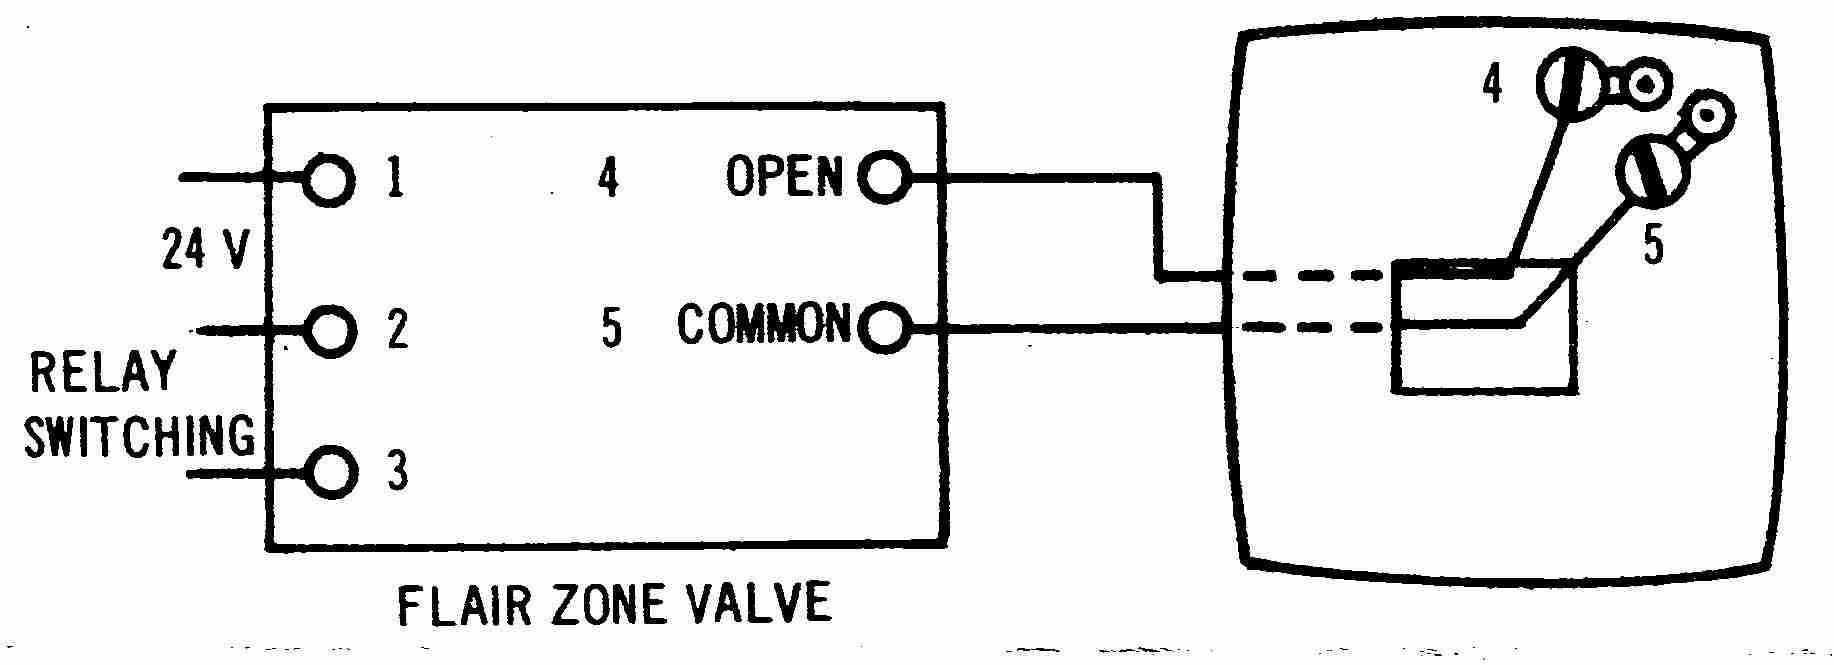 Flair2w_001_DJFc1 room thermostat wiring diagrams for hvac systems air conditioner relay wiring diagram at n-0.co